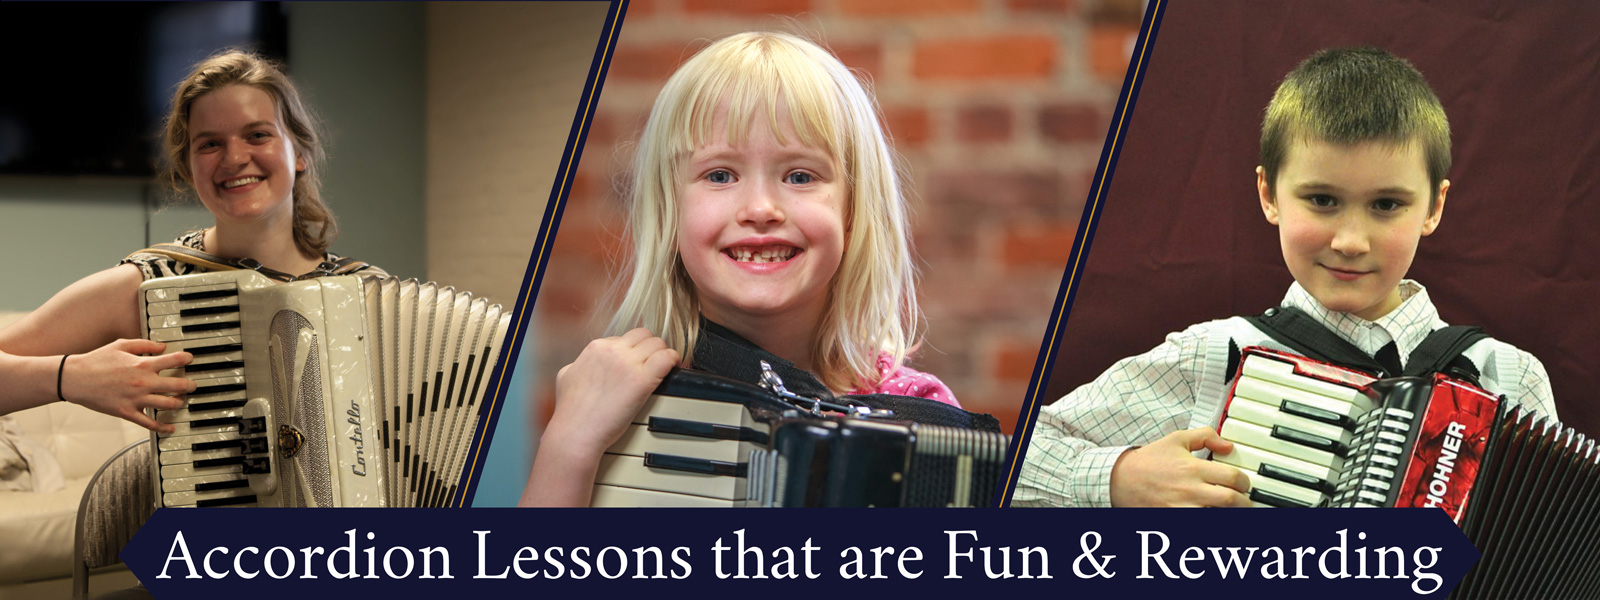 Spokane Accordion Lessons • Bartell Music Academy • (509